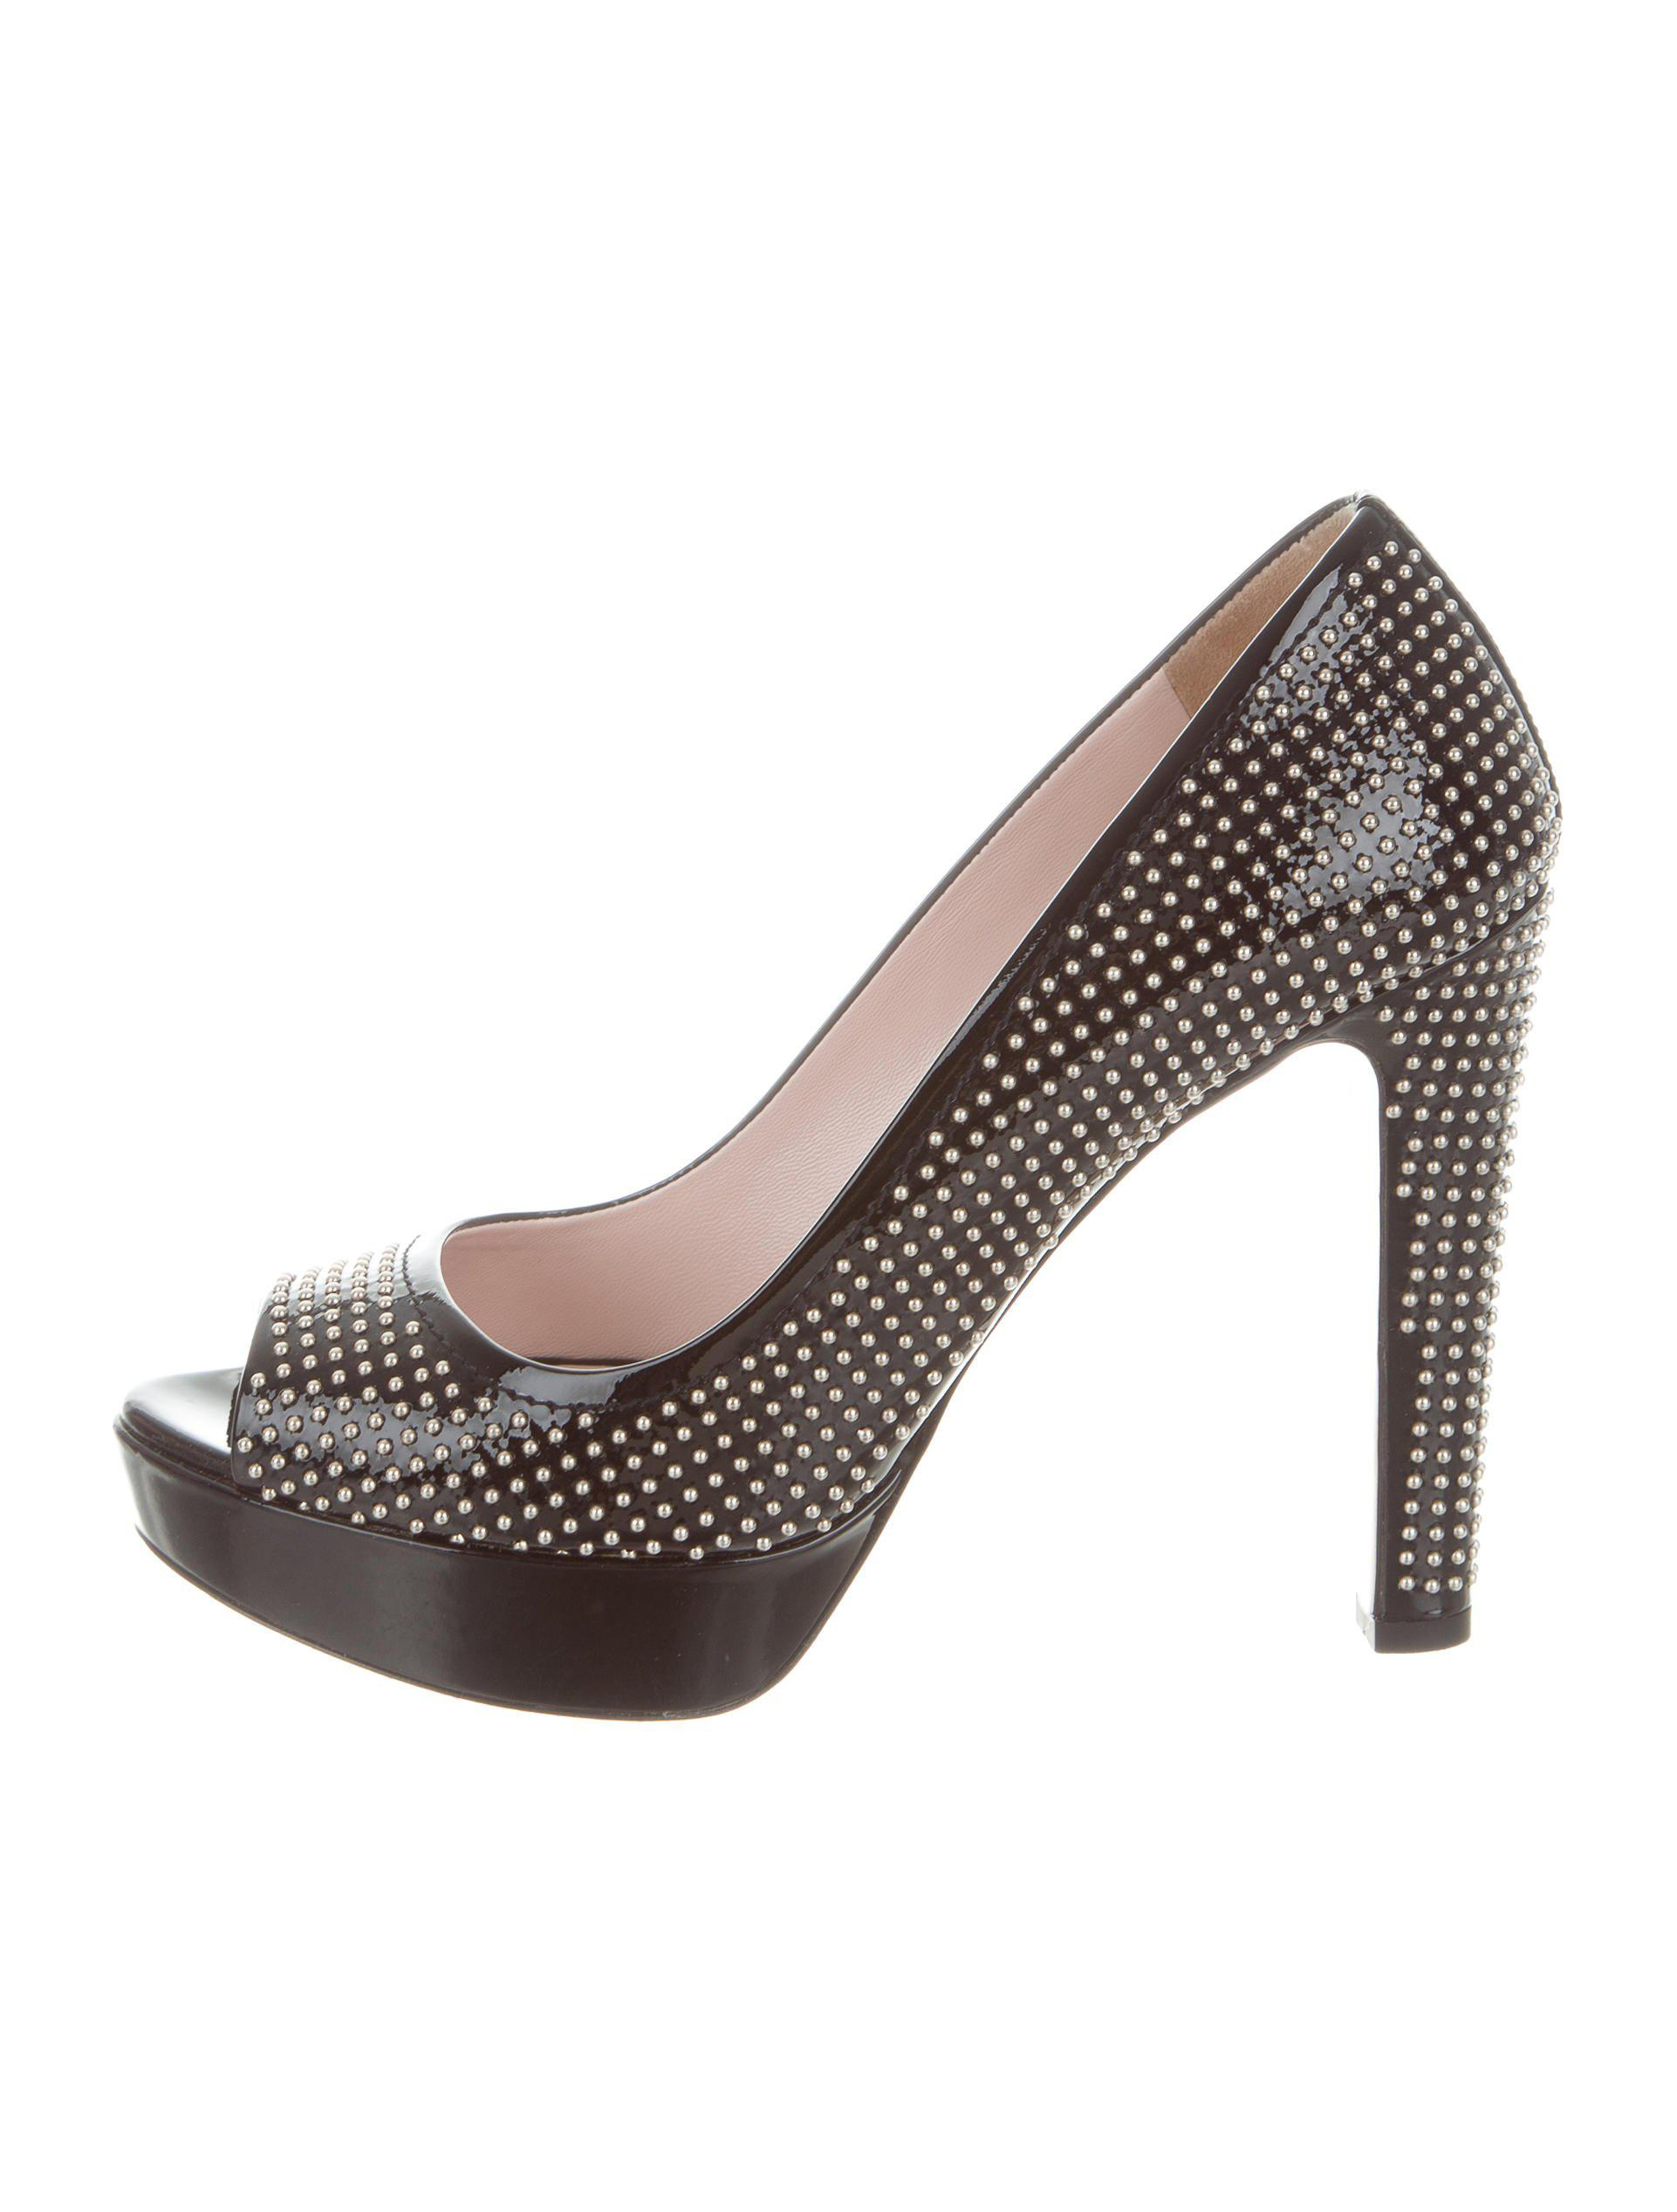 studded heel pumps - Metallic Miu Miu Sale 100% Original Visit New Online Discount Purchase Cheap Wholesale uPx7pb